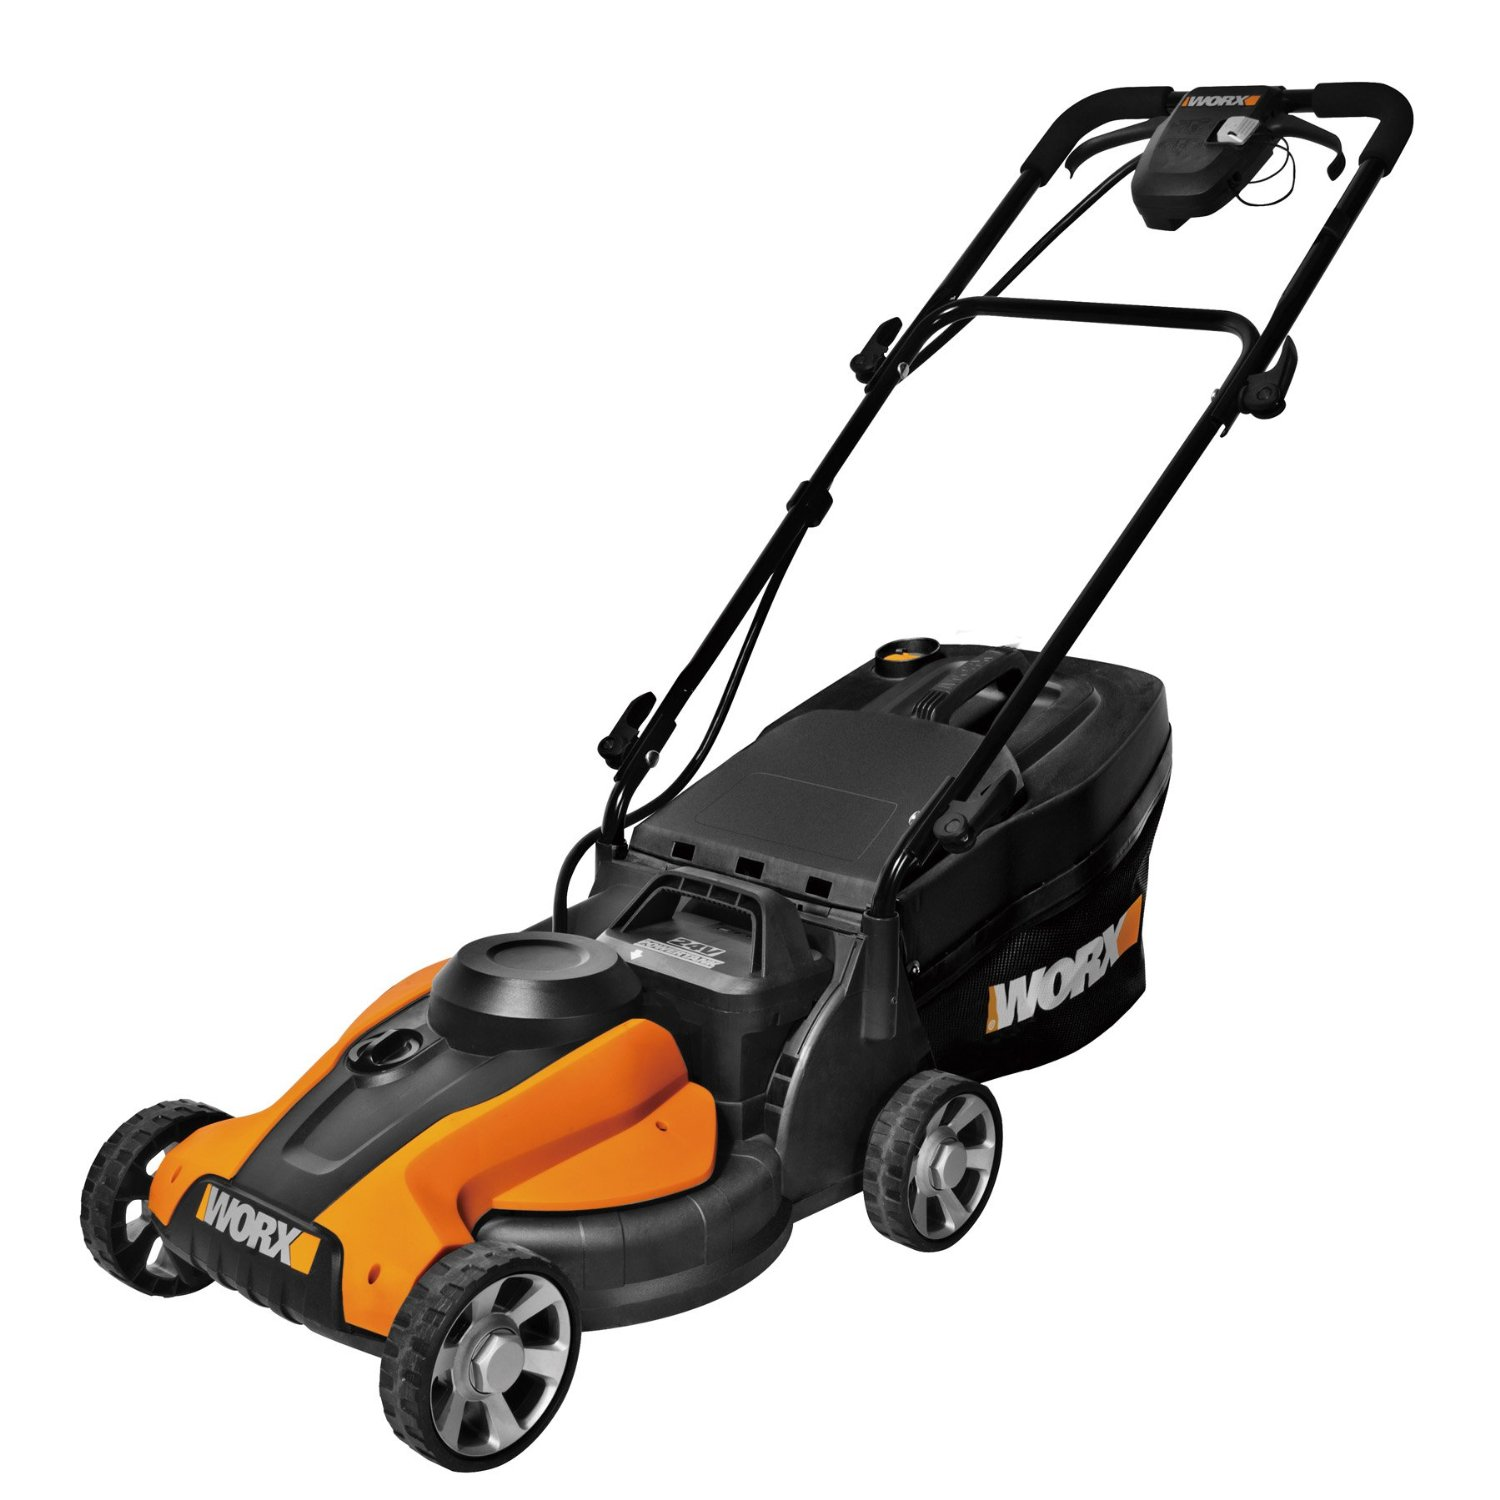 Gadgets For Your Home And Kitchen Worx Wg782 14 Inch 24